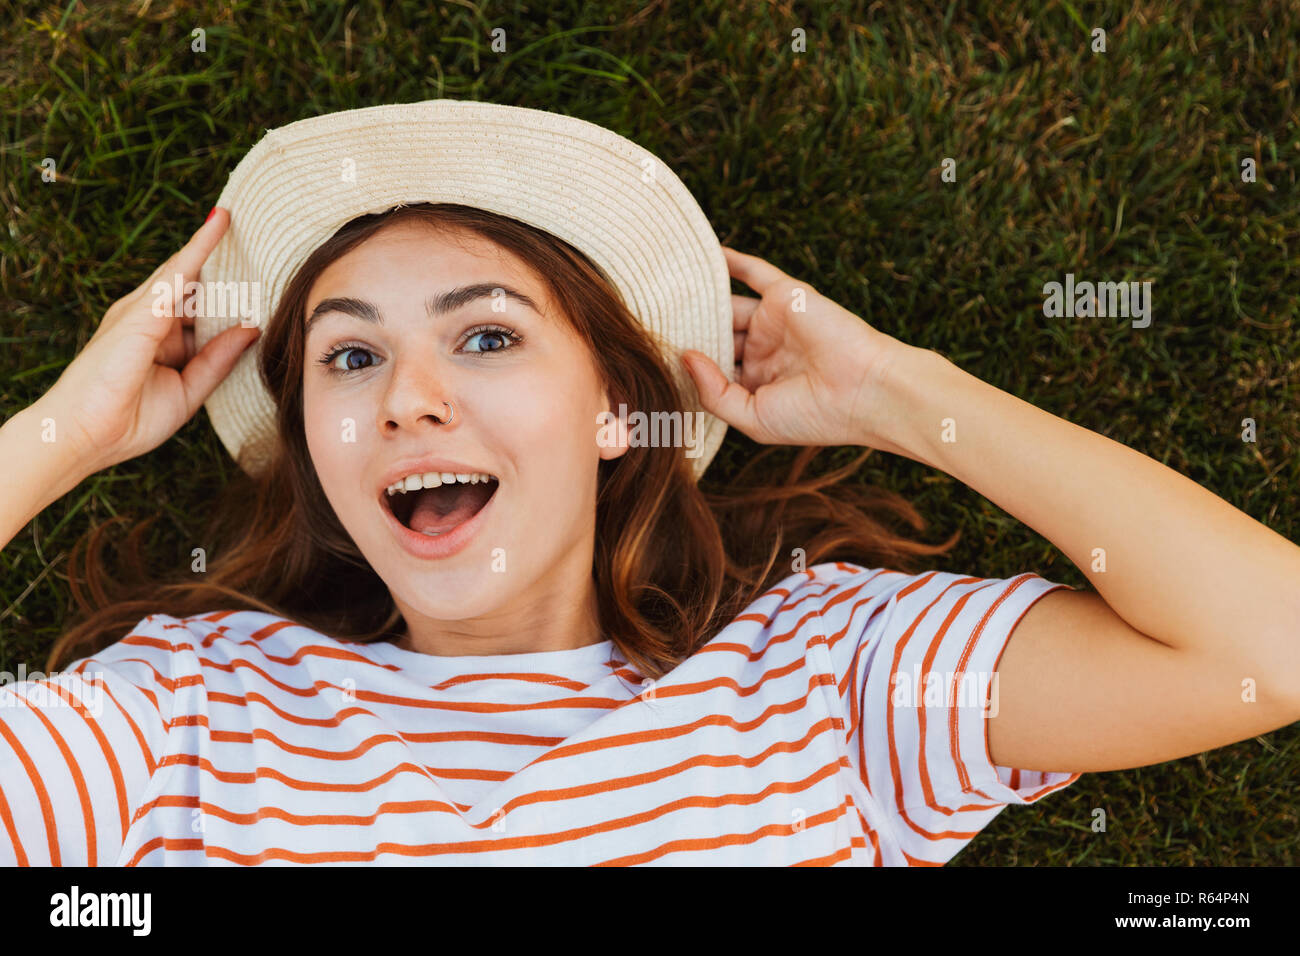 Top view of an excited young girl in summer hat laying on a grass, grimacing - Stock Image